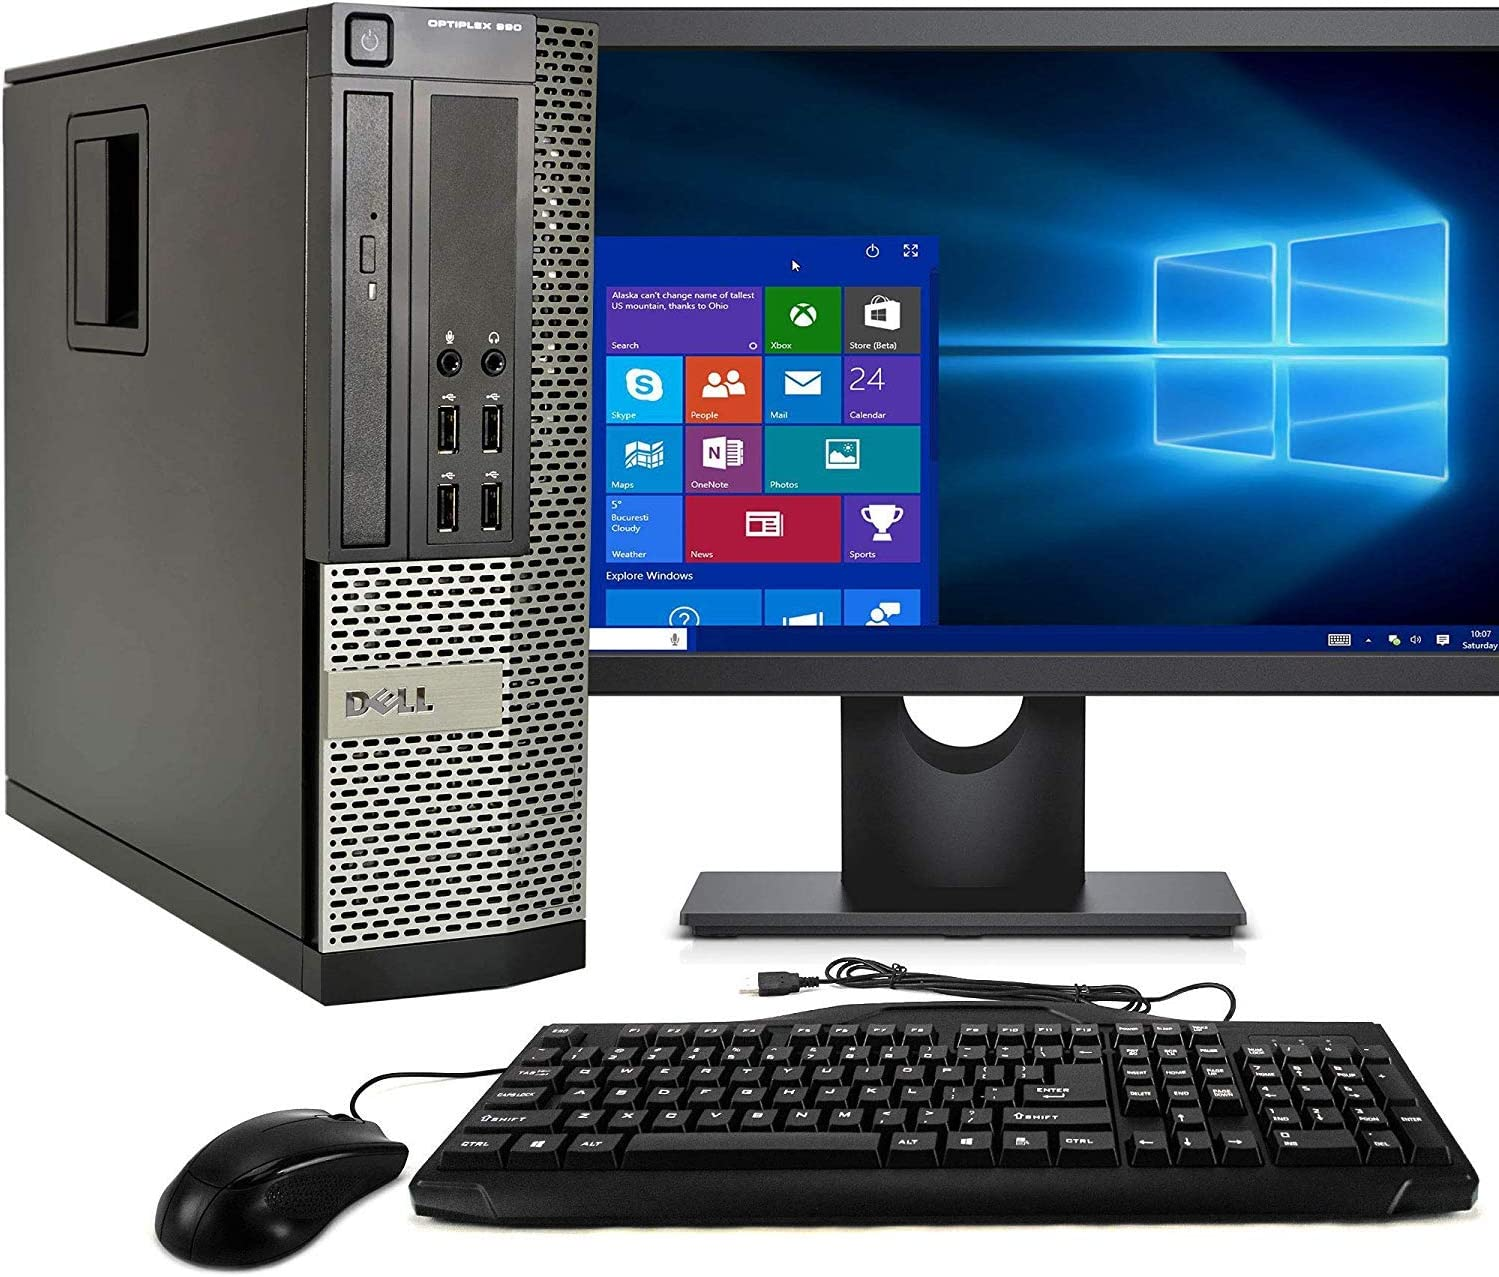 Dell Optiplex 990 SFF PC, Intel Core i5 Processor, 16GB RAM, 2TB HDD, DVDRW, Keyboard & Mouse, WiFi, Bluetooth 4.0, Windows 10 Pro, 20in LCD Monitor (Renewed)